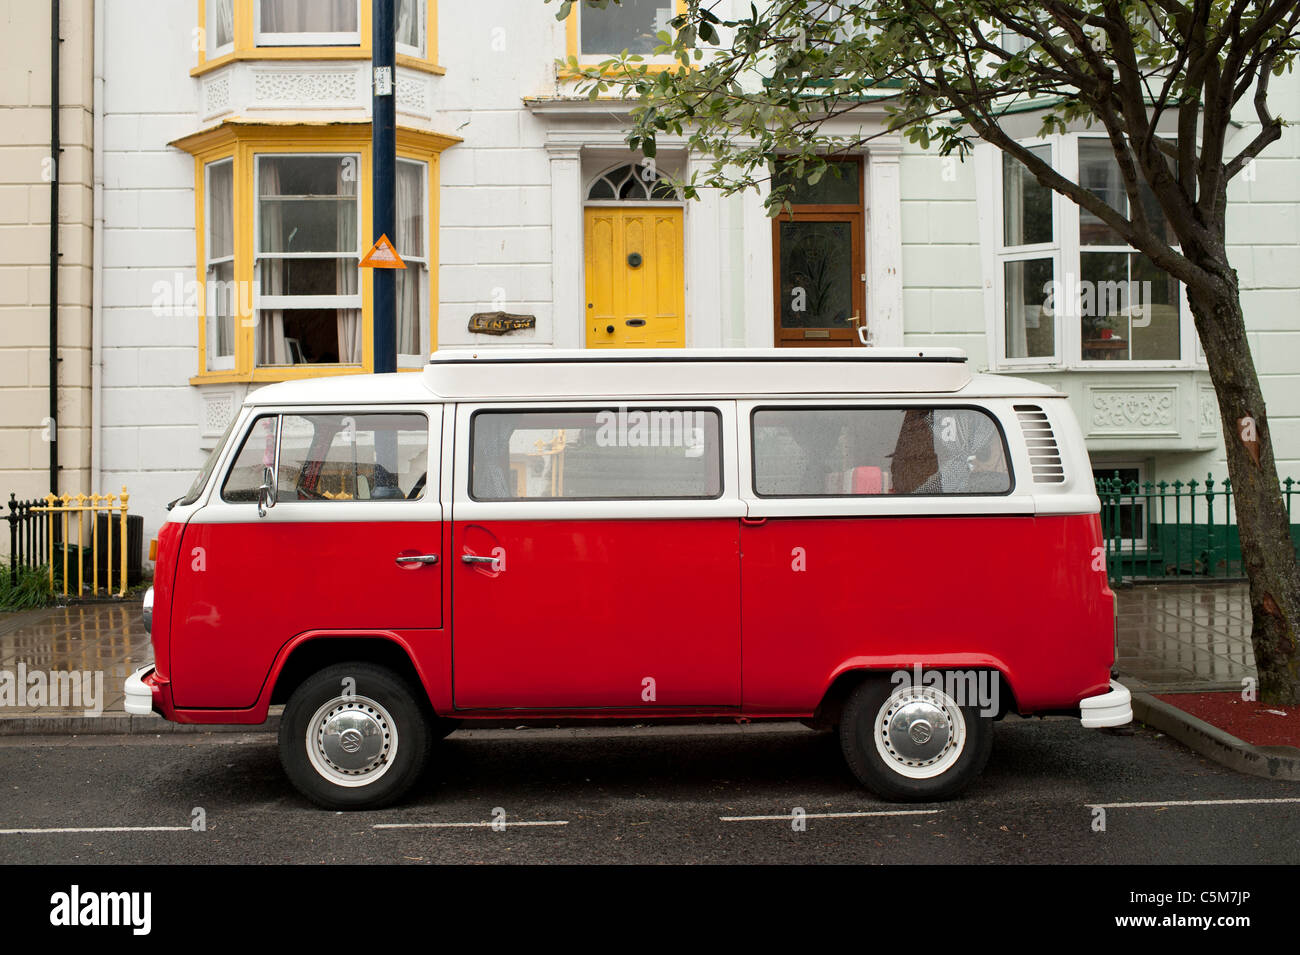 a red and white VW Campervan parked on the street, UK - Stock Image